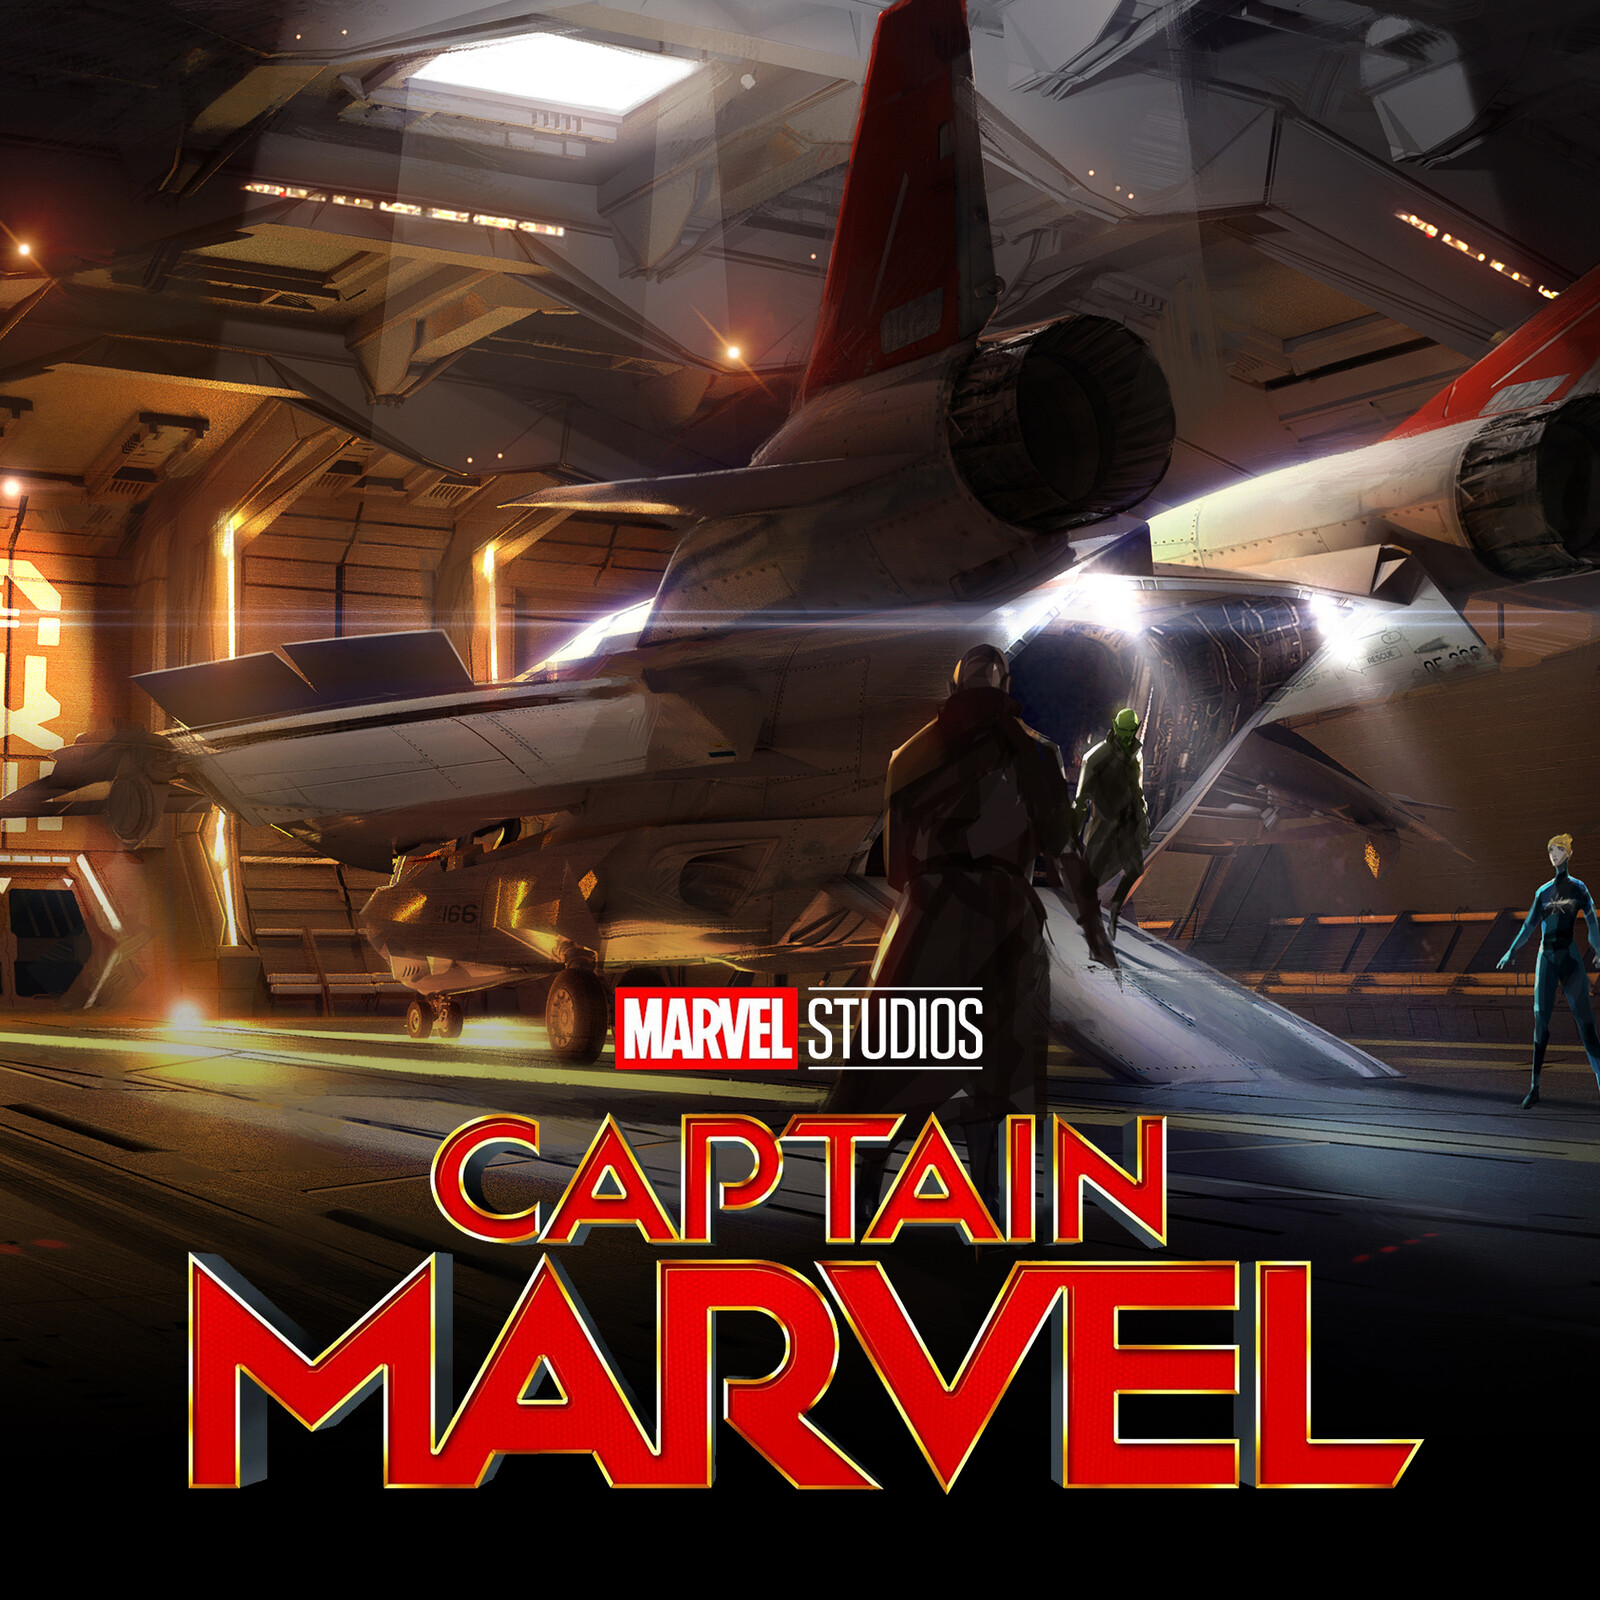 CAPTAIN MARVEL: Mar Vell's Cruiser Interior